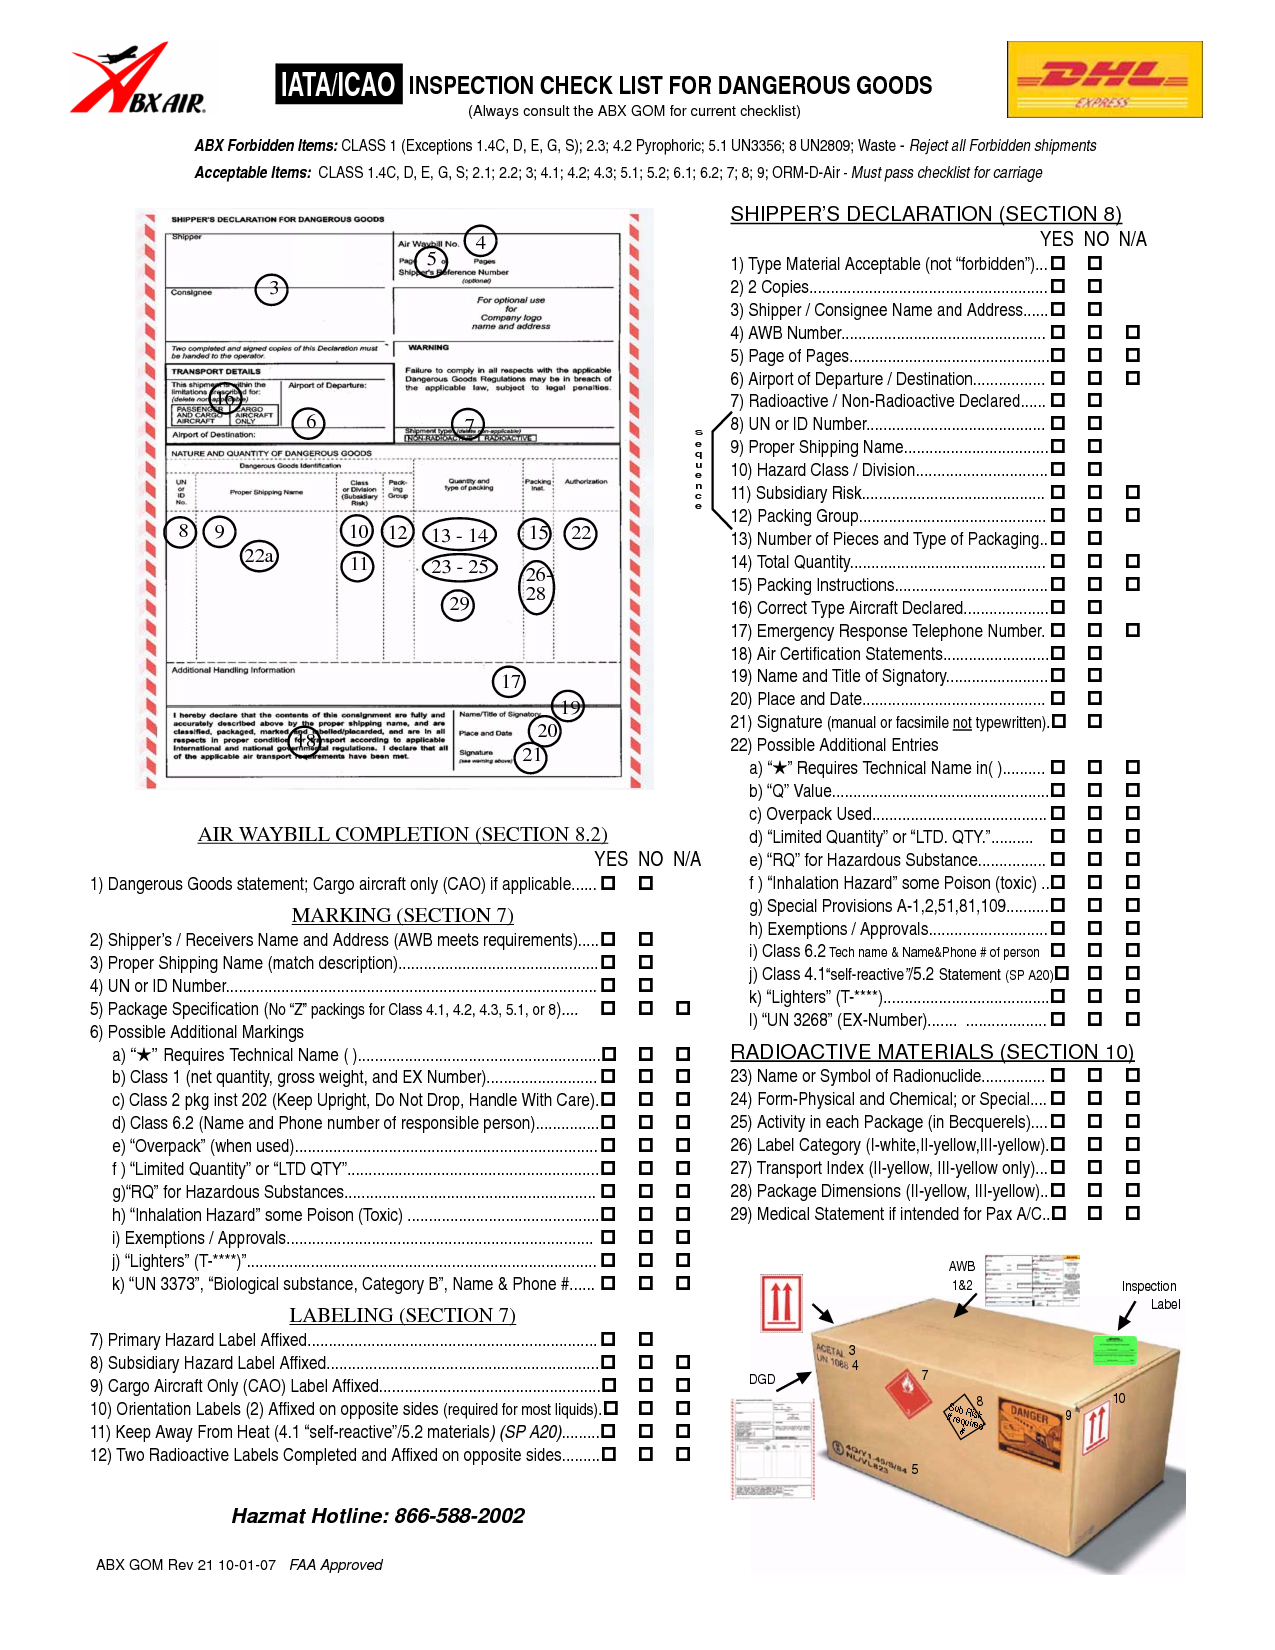 Iata  Icao Inspection Checklist For Dangerous Goods  Supply